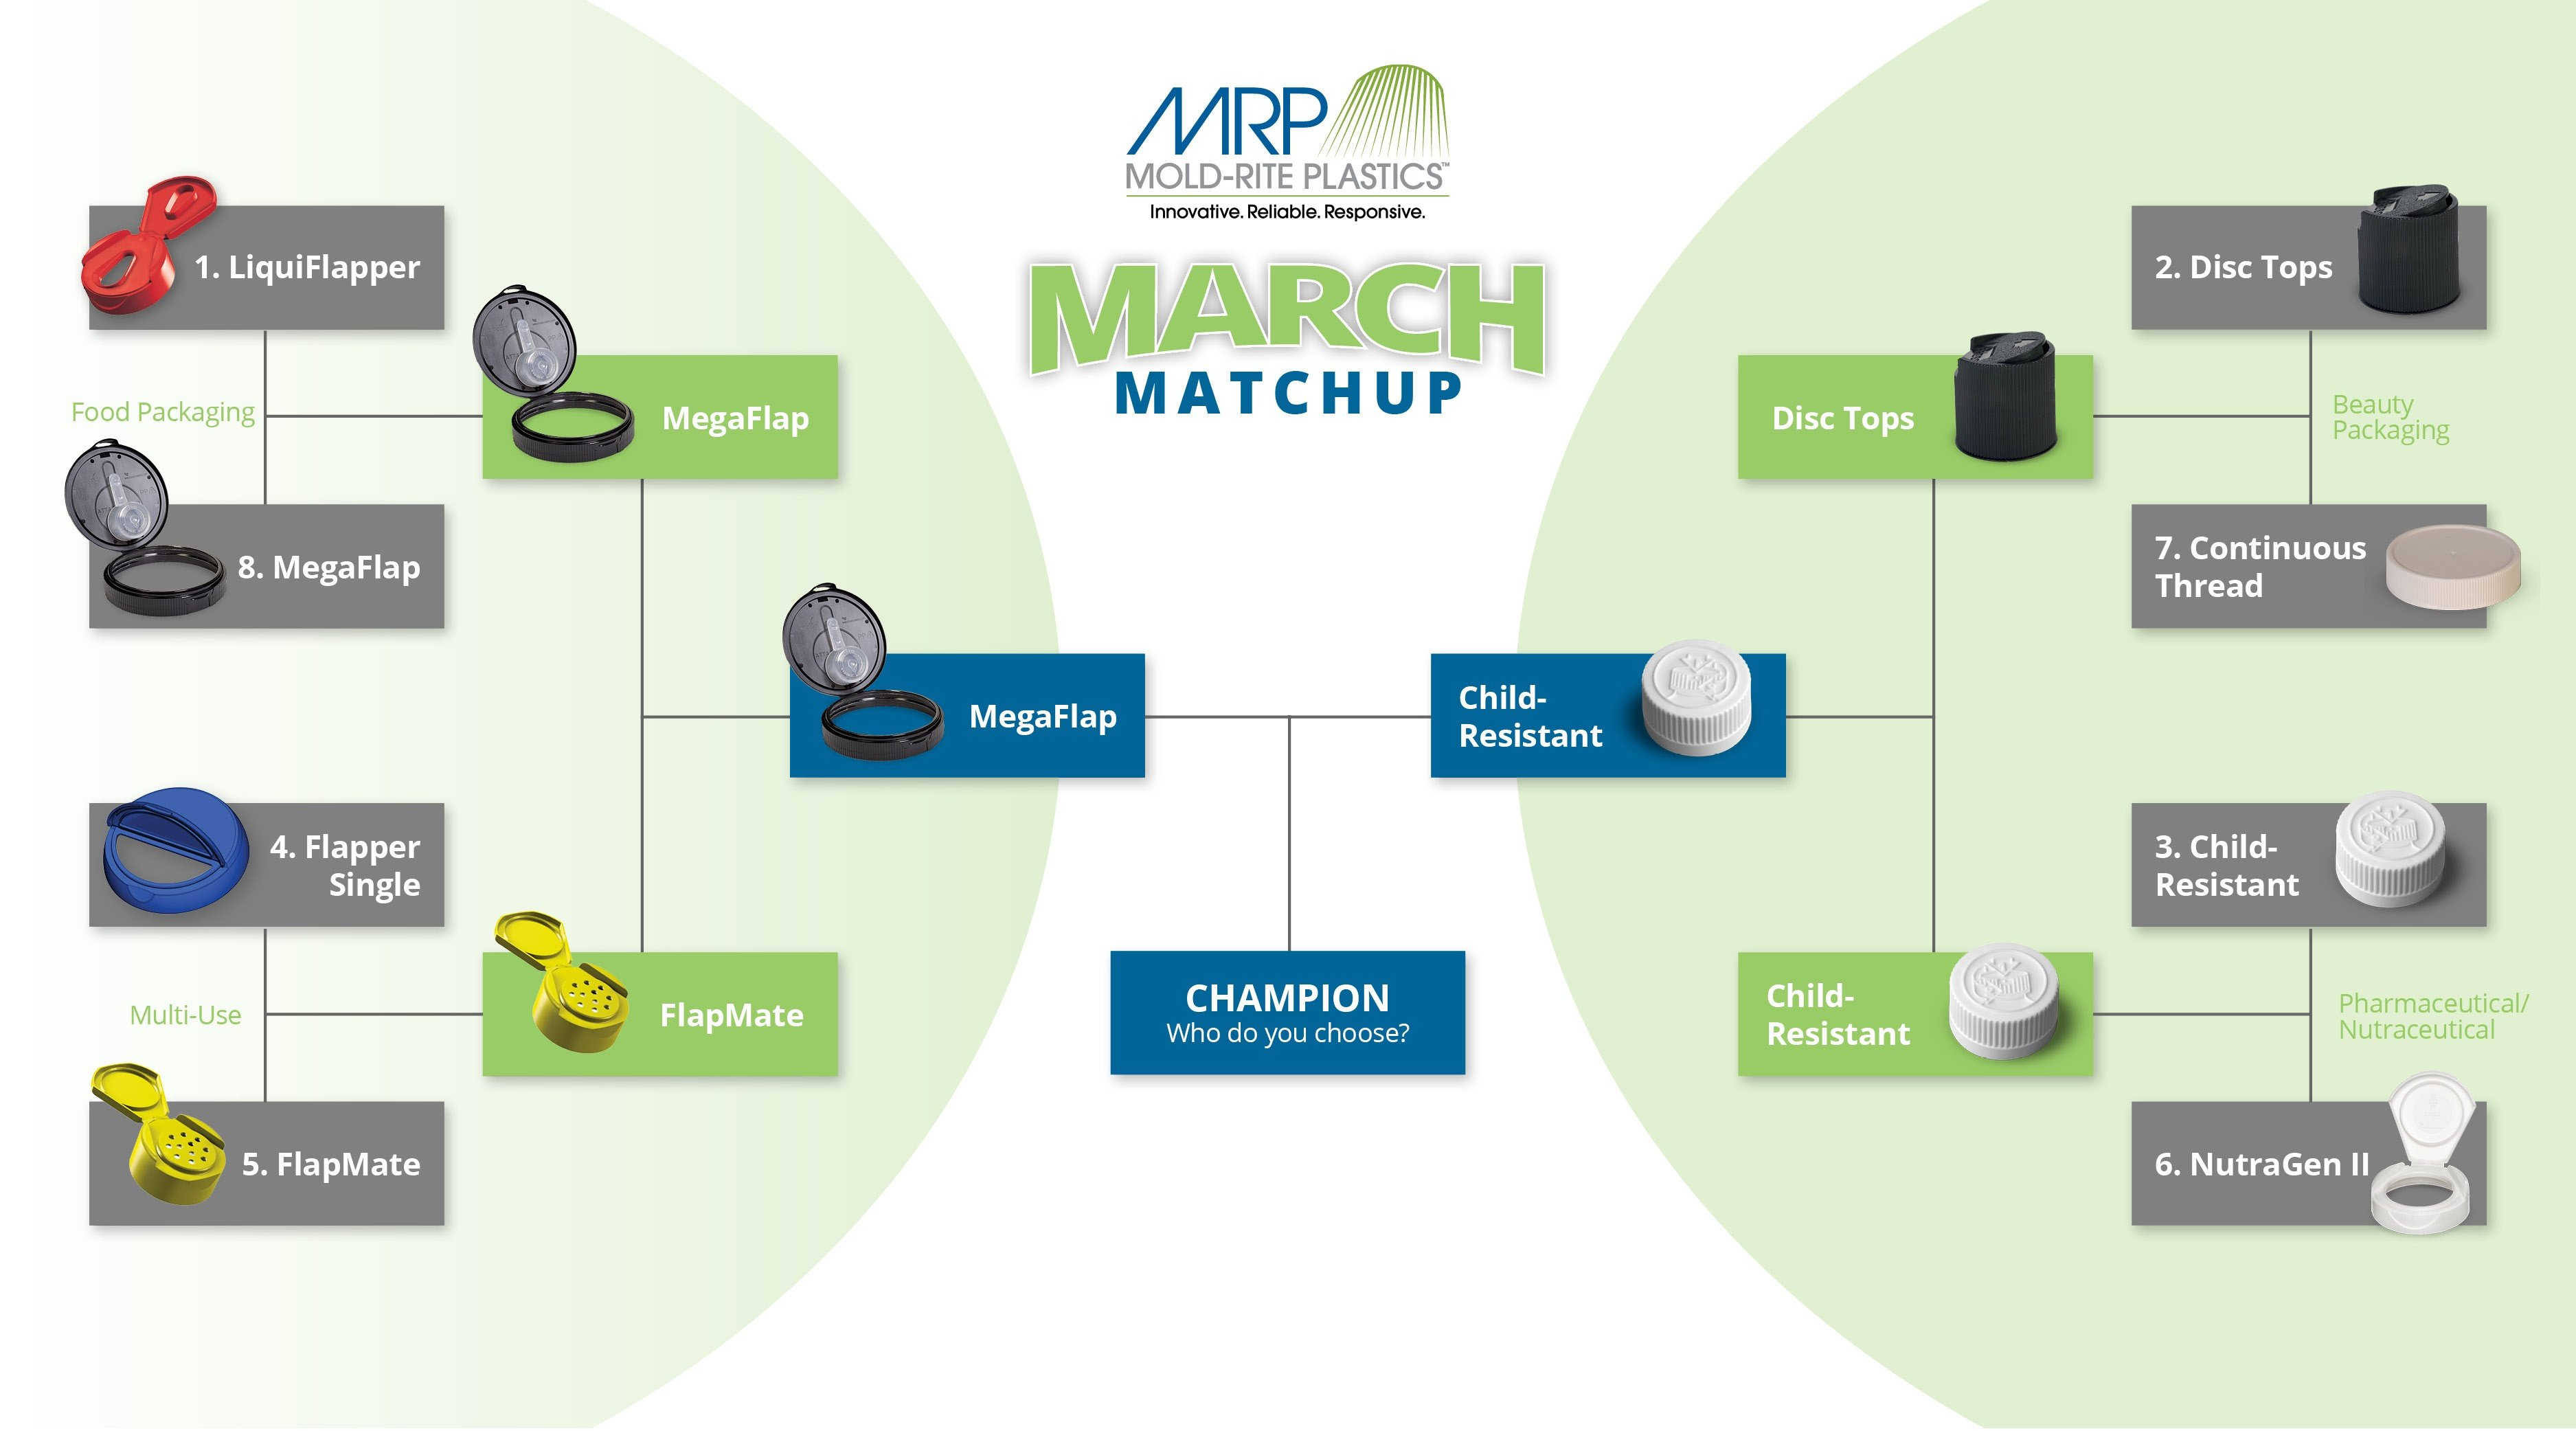 Mold-Rite March Matchup: The Ultimate Caps and Closures Showdown